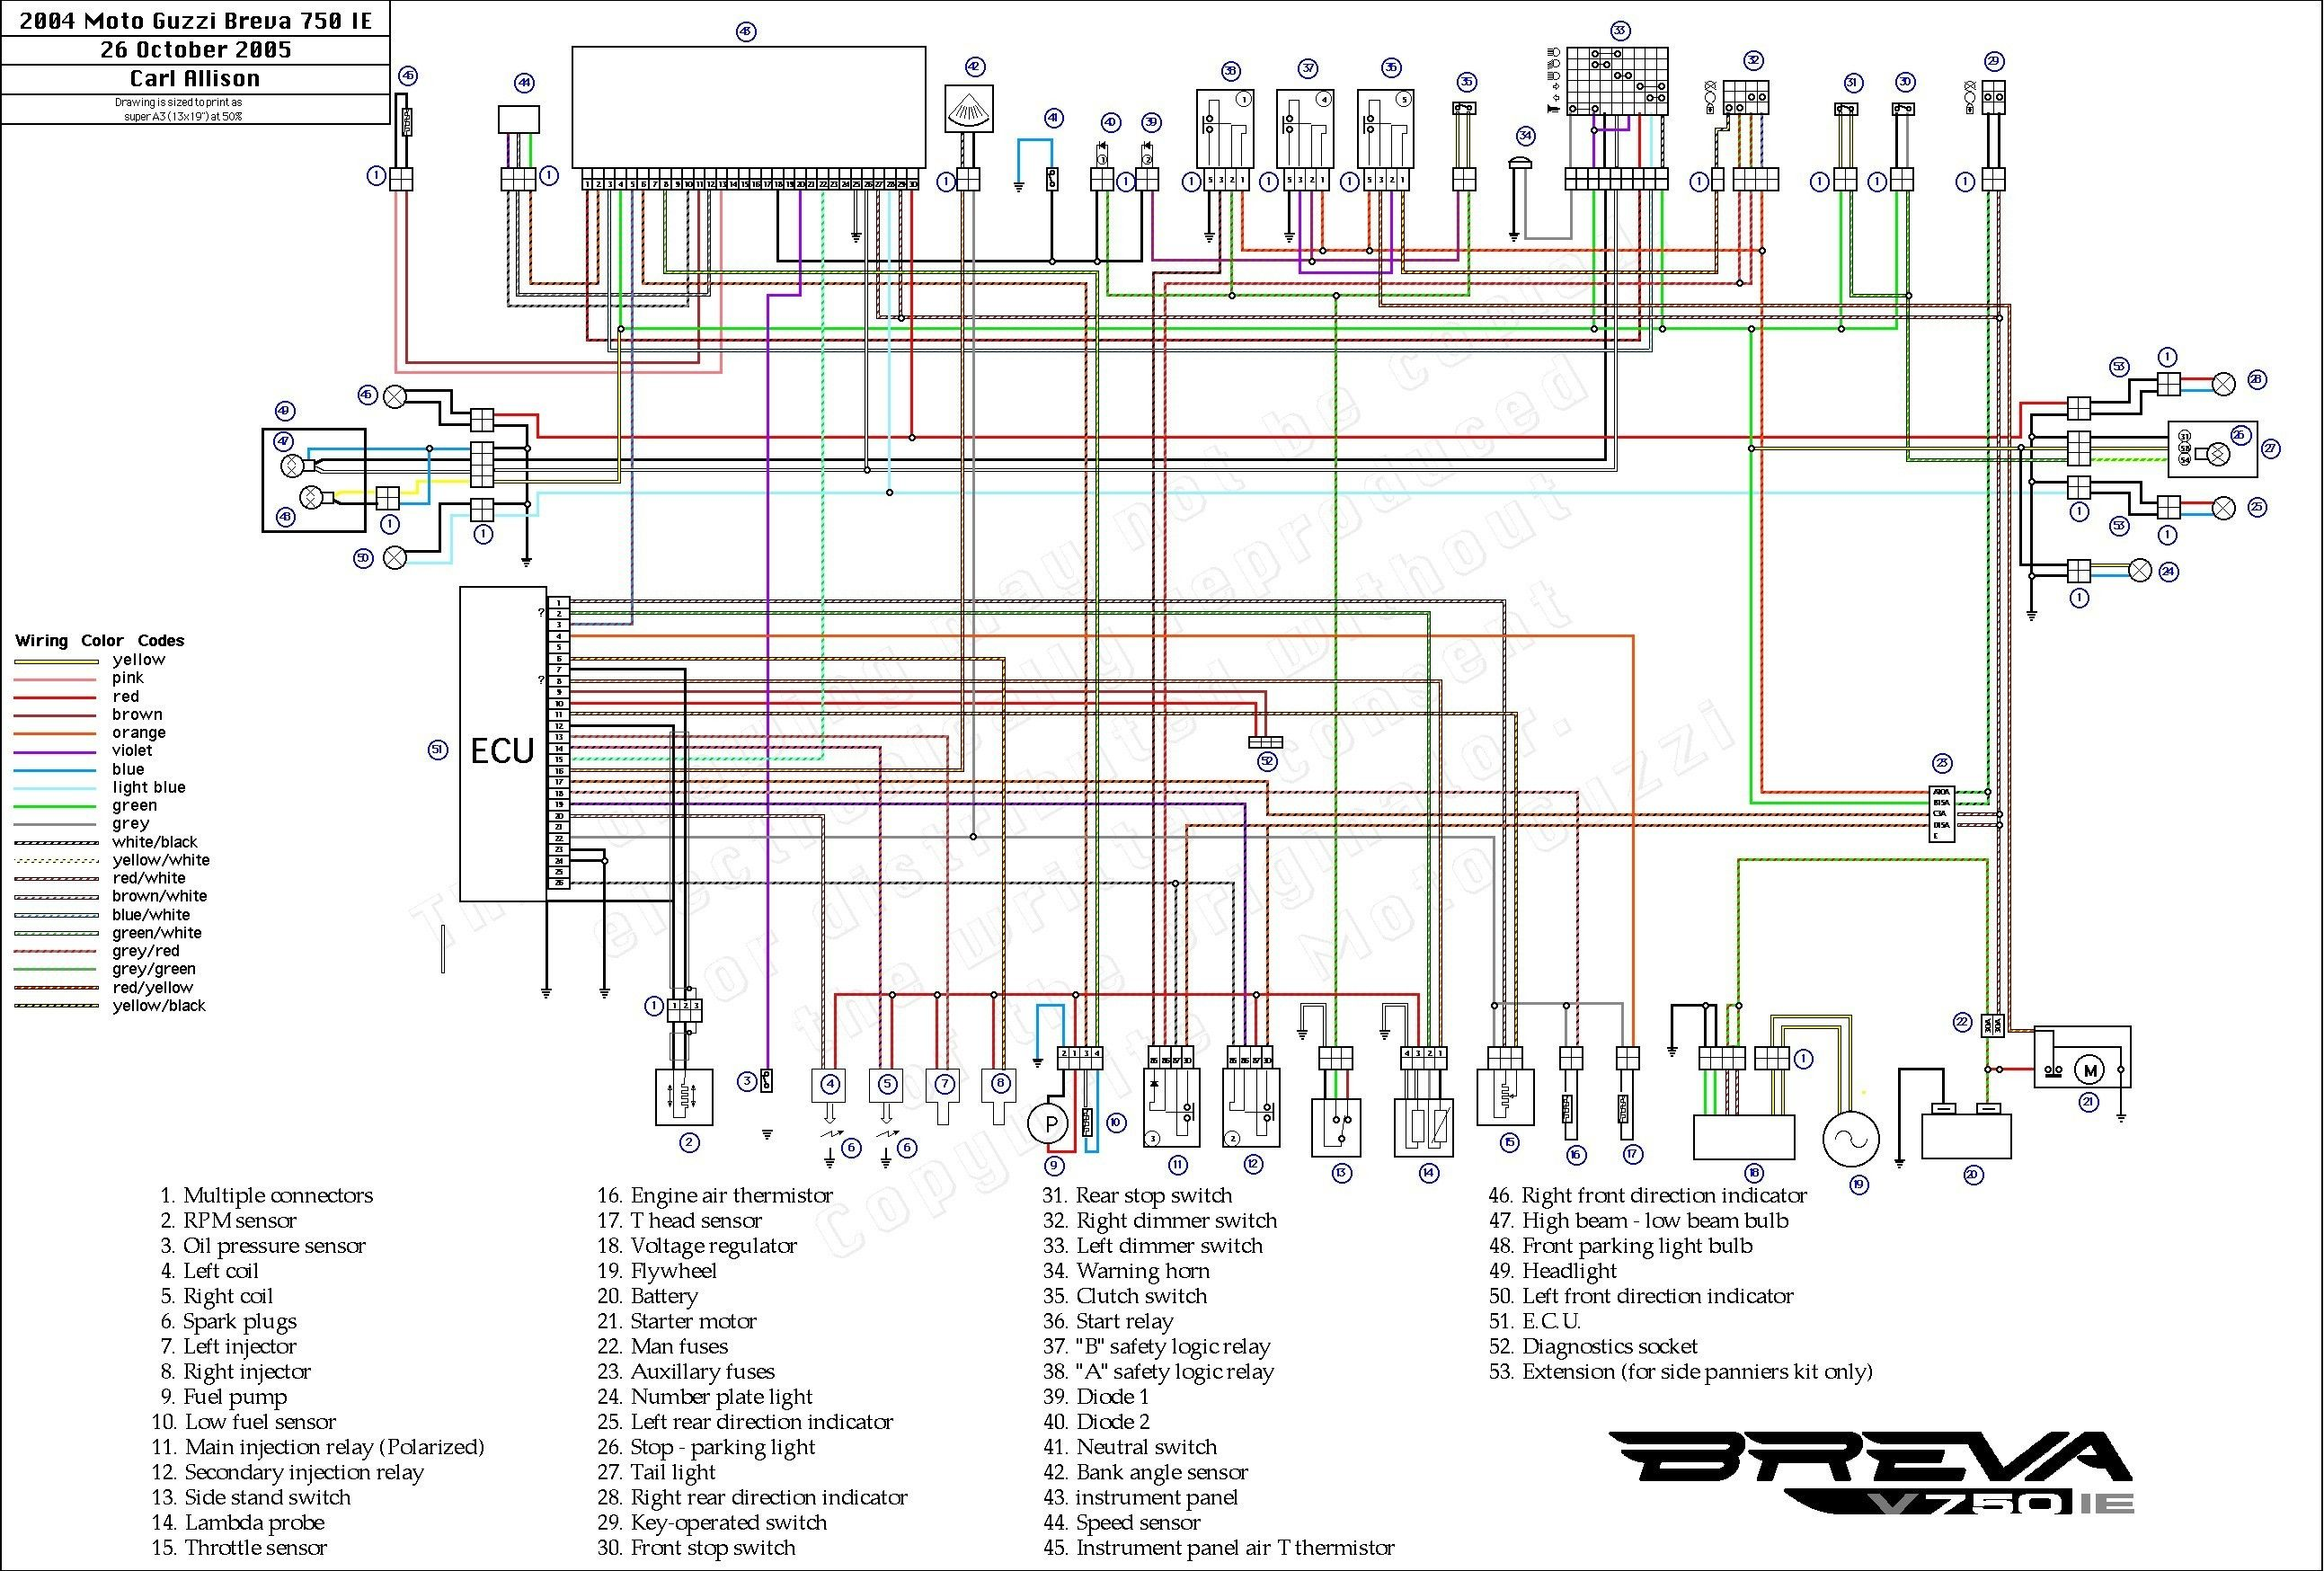 2006 5 7 Hemi Wiring Harness Diagram In 2021 Dodge Ram 1500 Dodge Ram 2004 Dodge Ram 1500